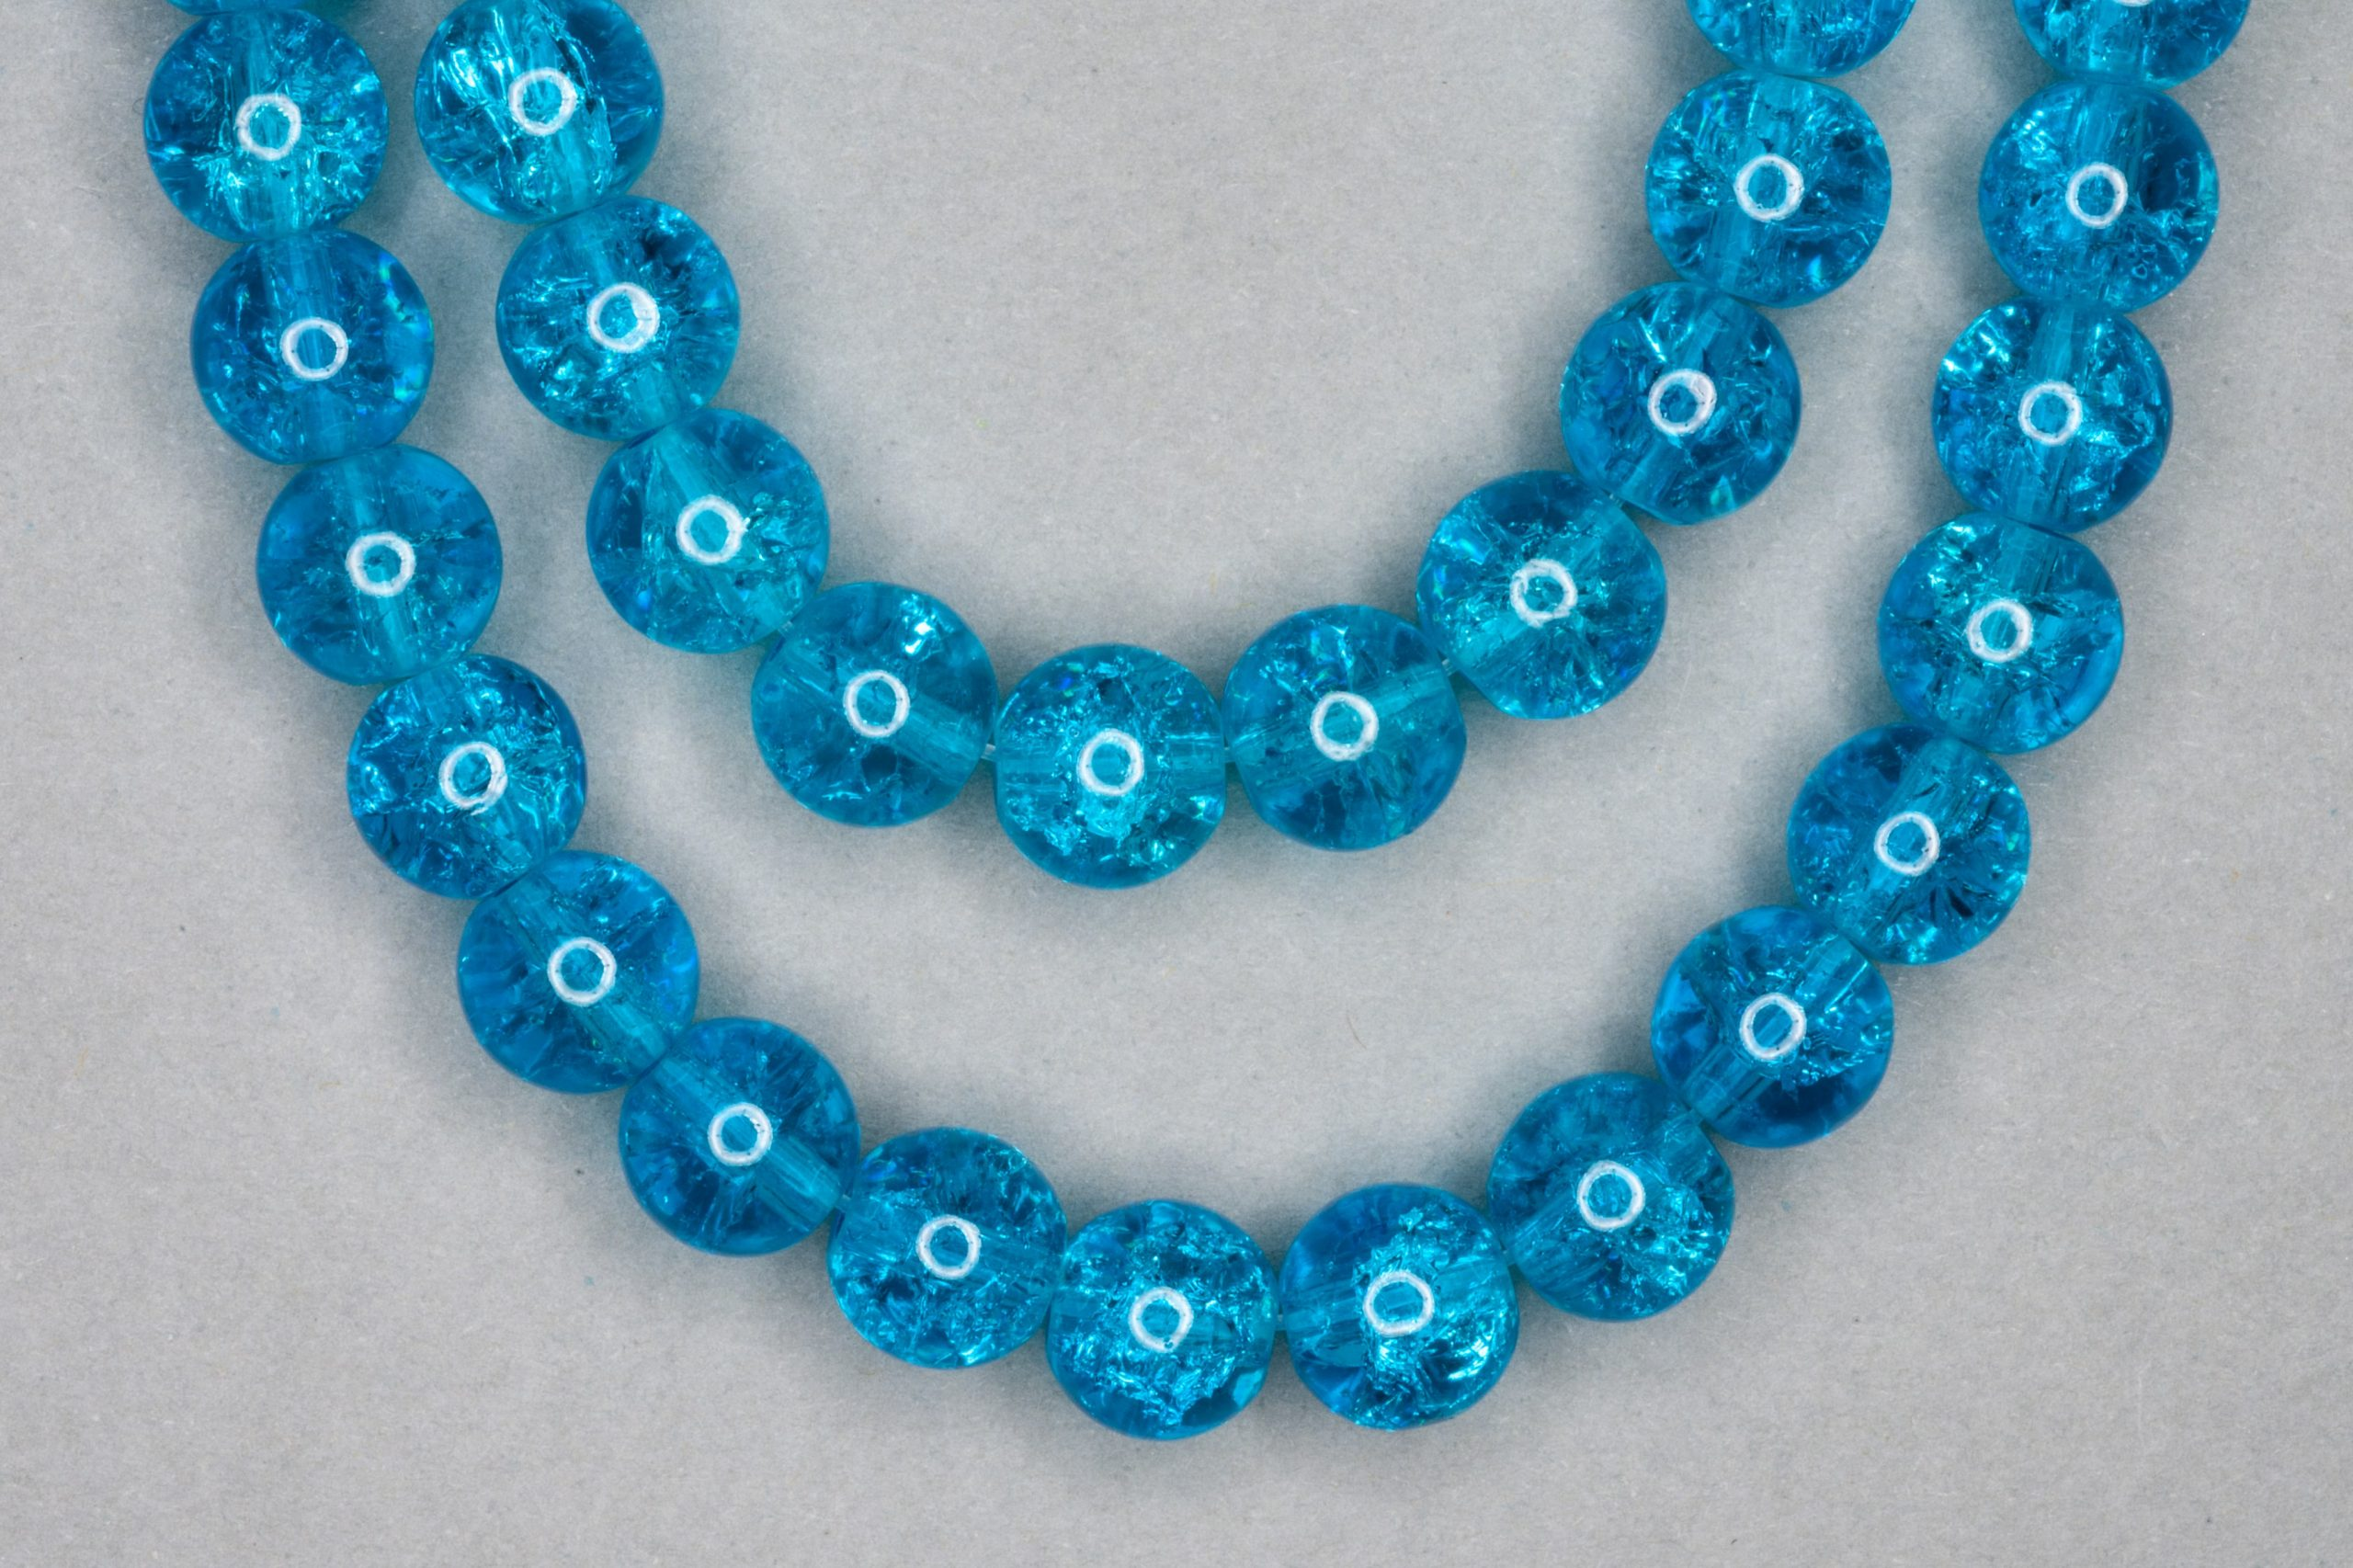 Dark Turquoise Crackle Glass Beads